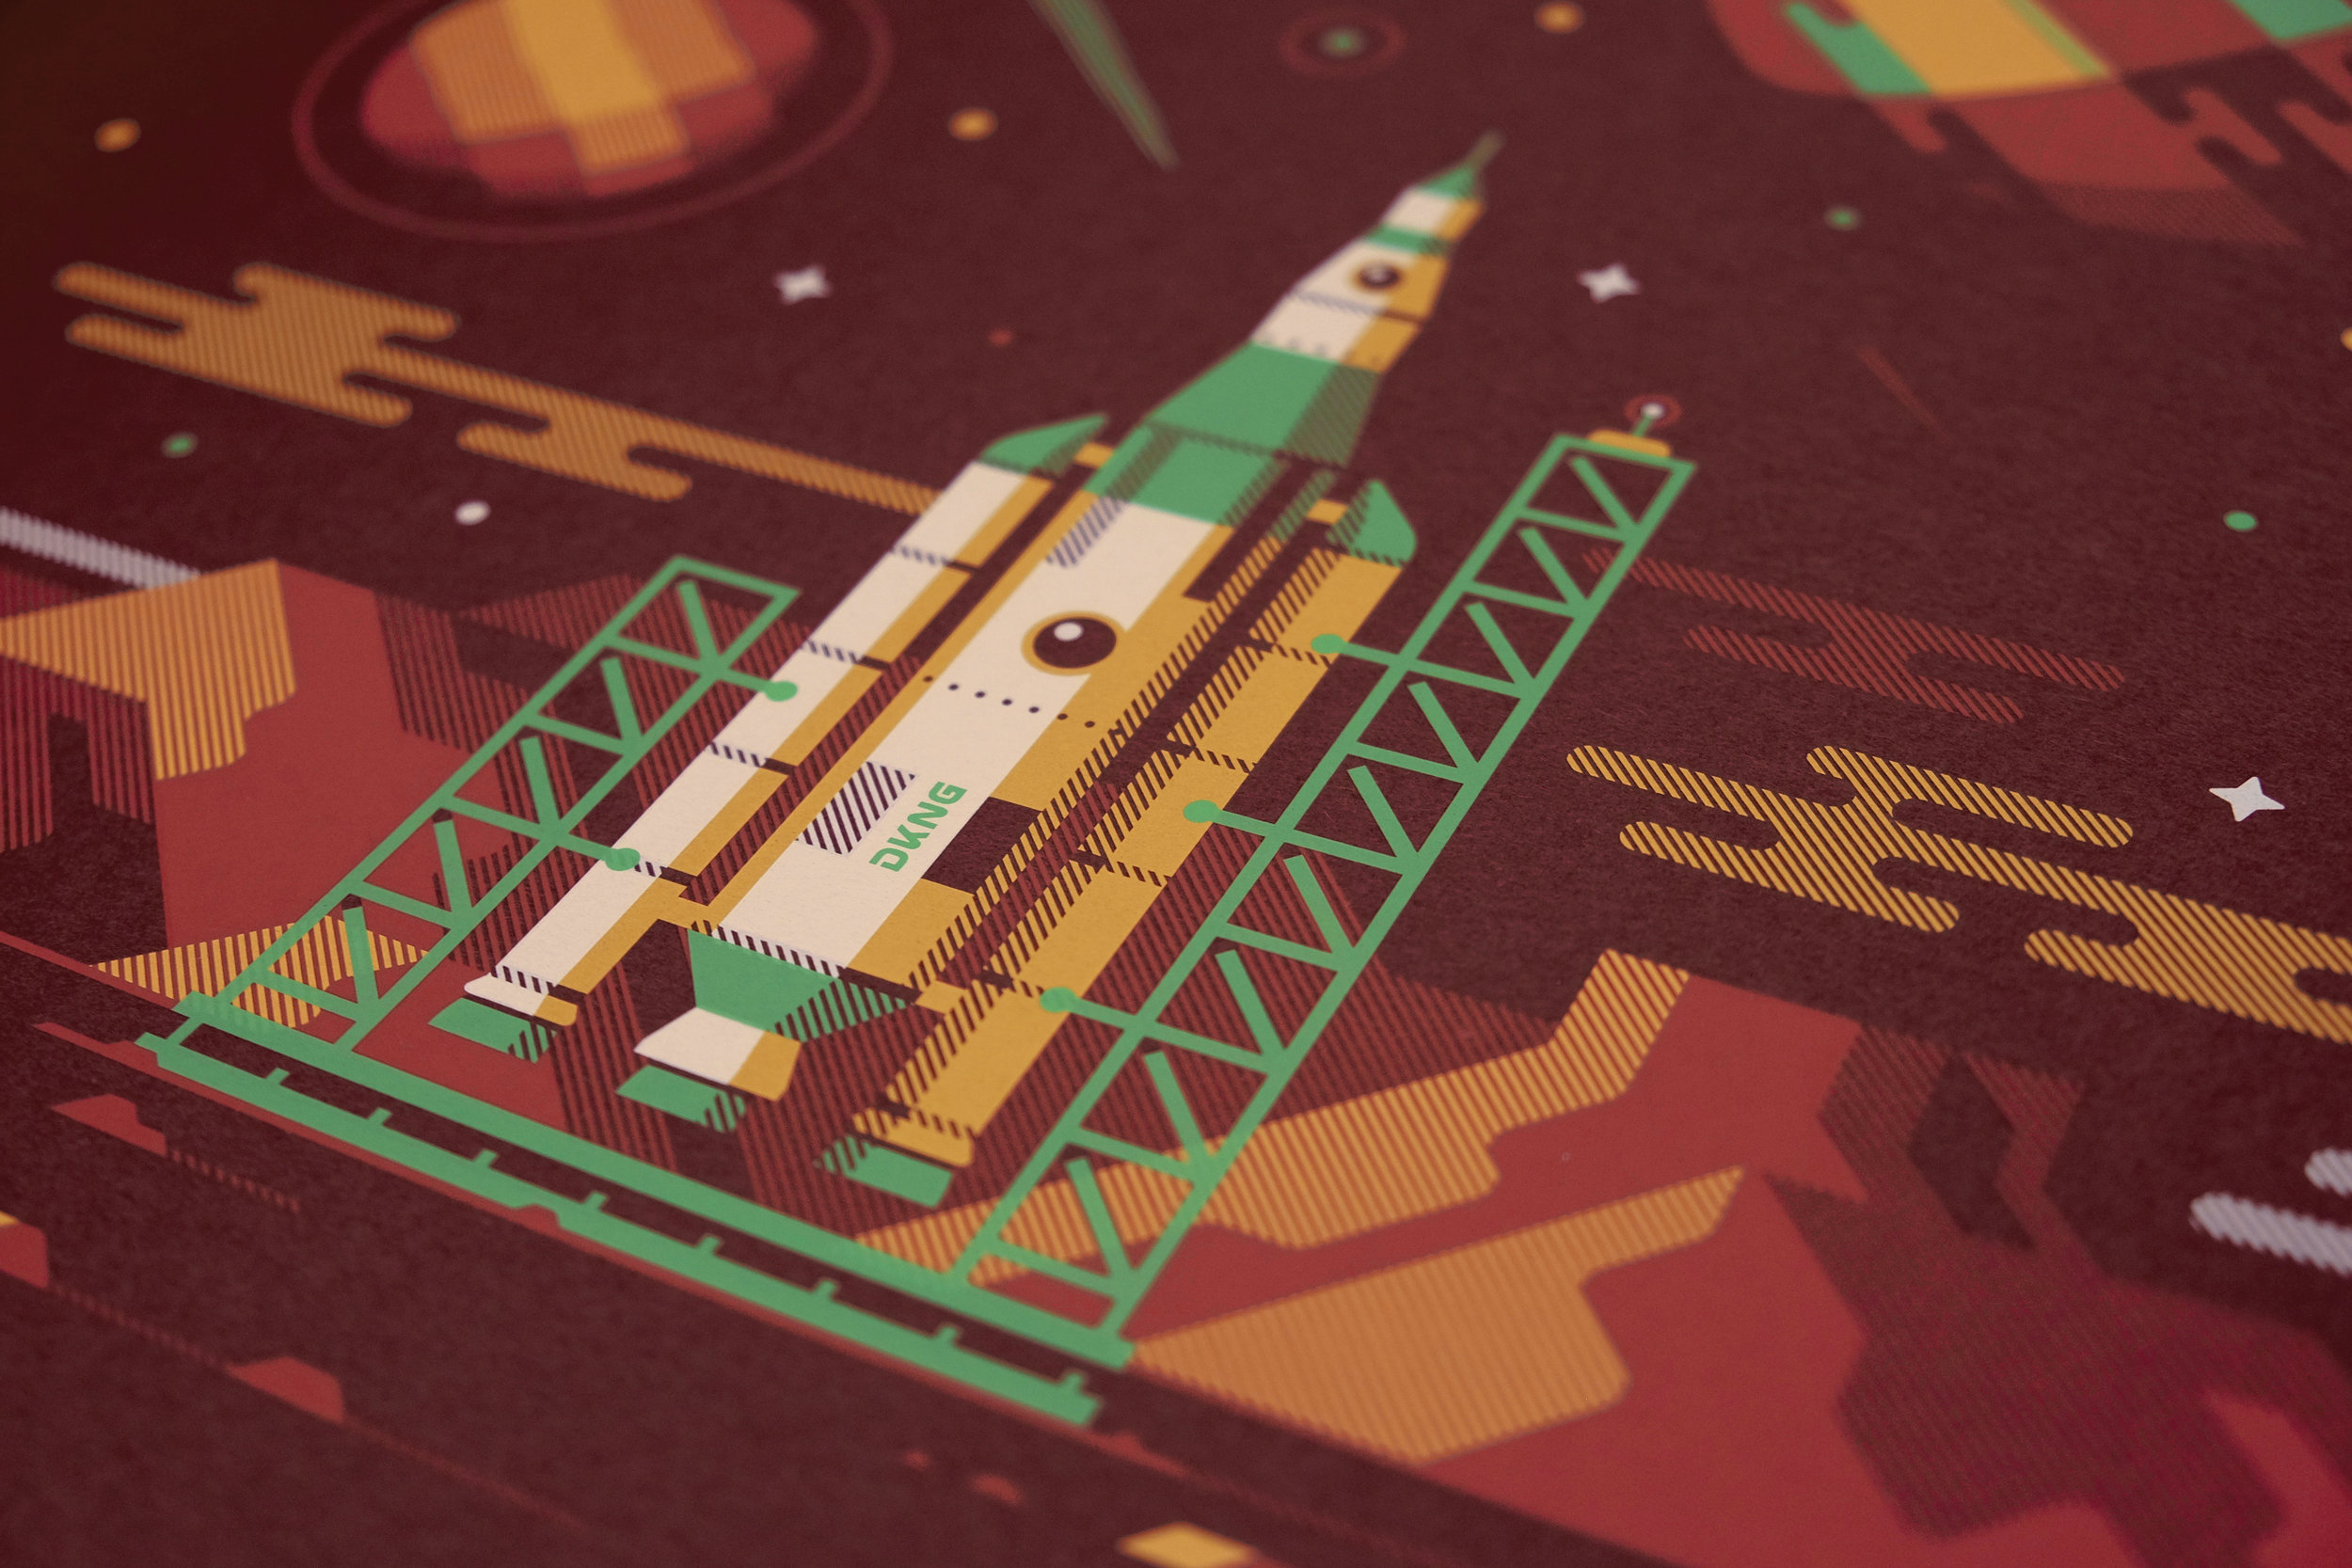 Orion art print by DKNG